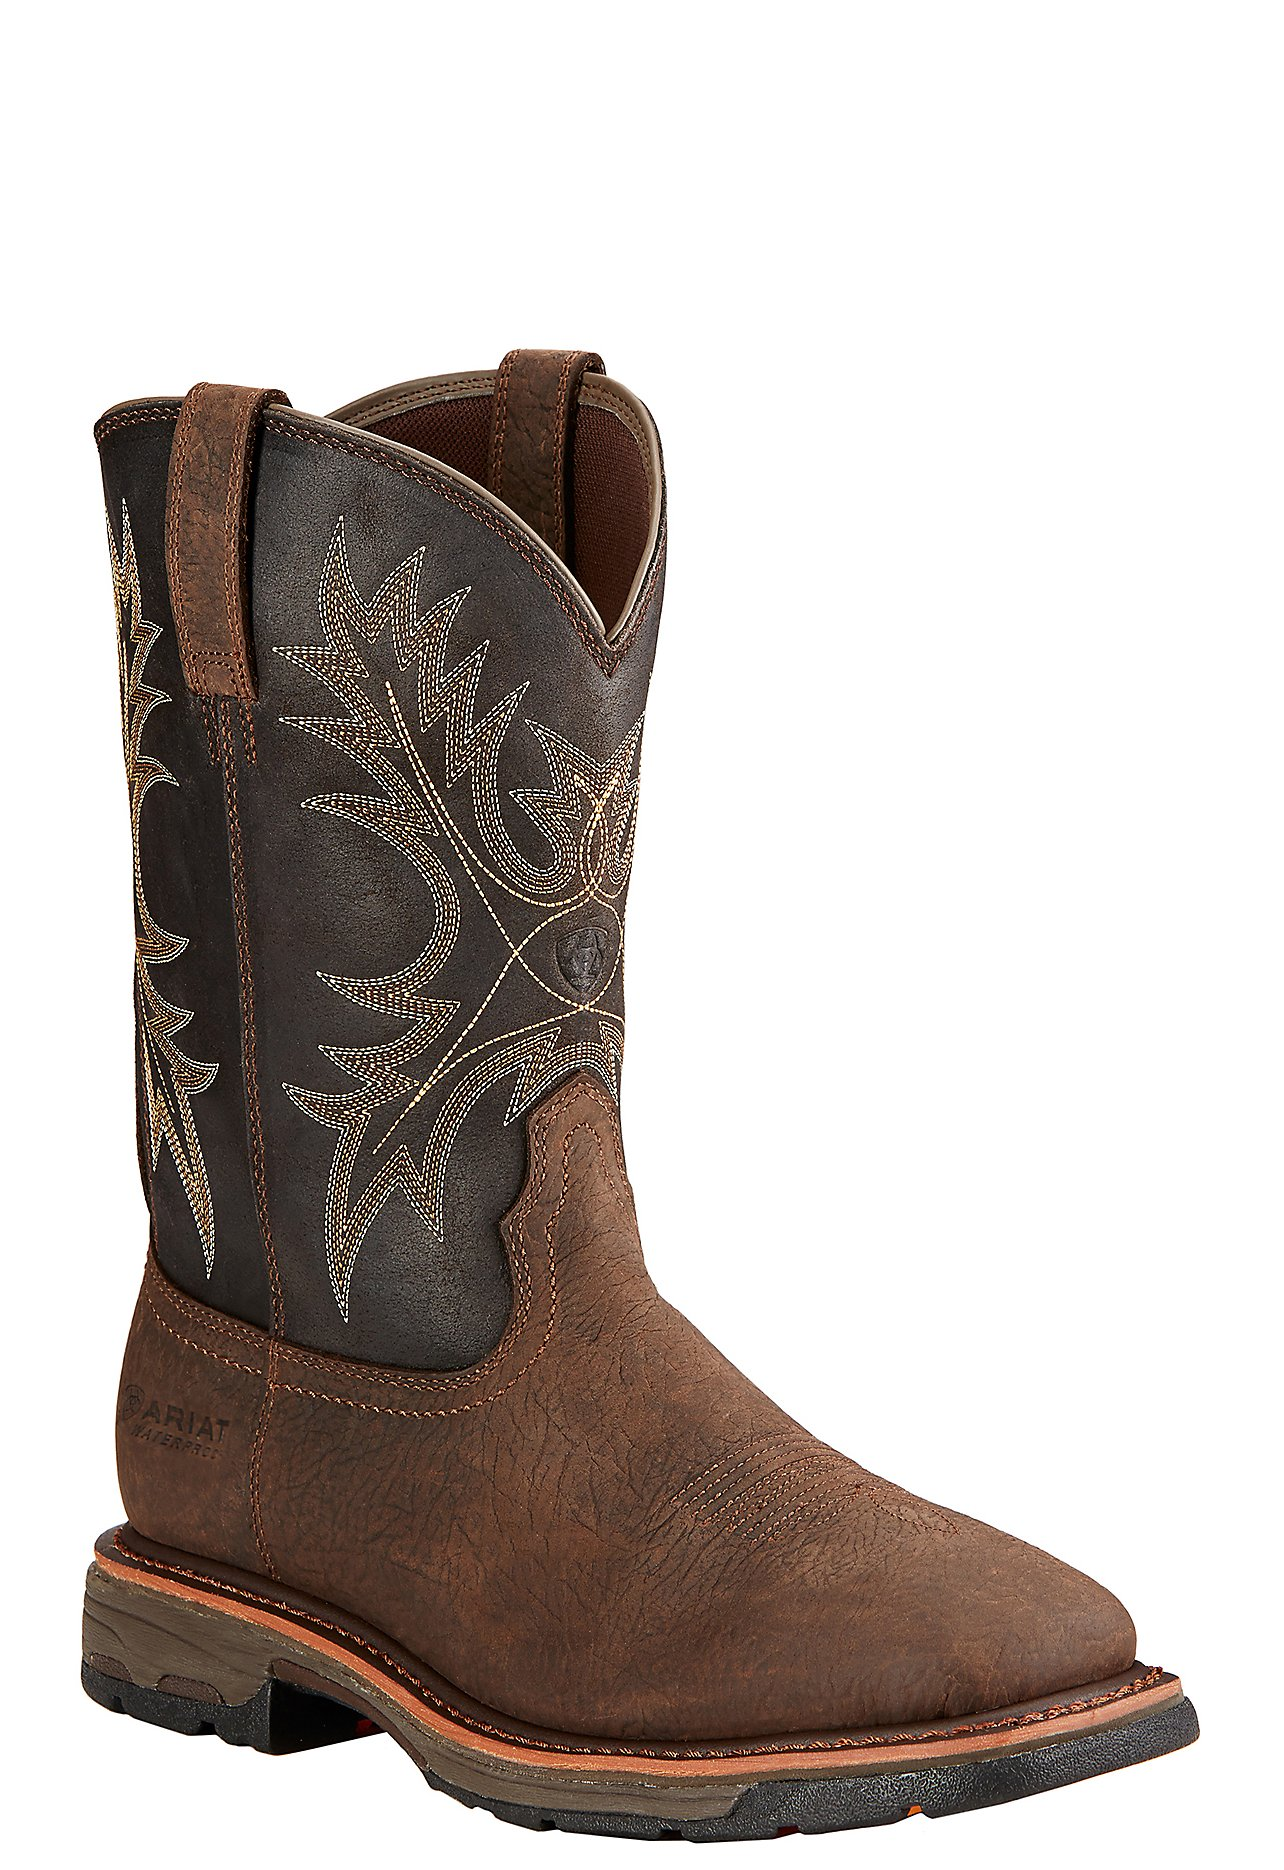 Shop Men&39s Work Boots   Free Shipping $50    Cavender&39s